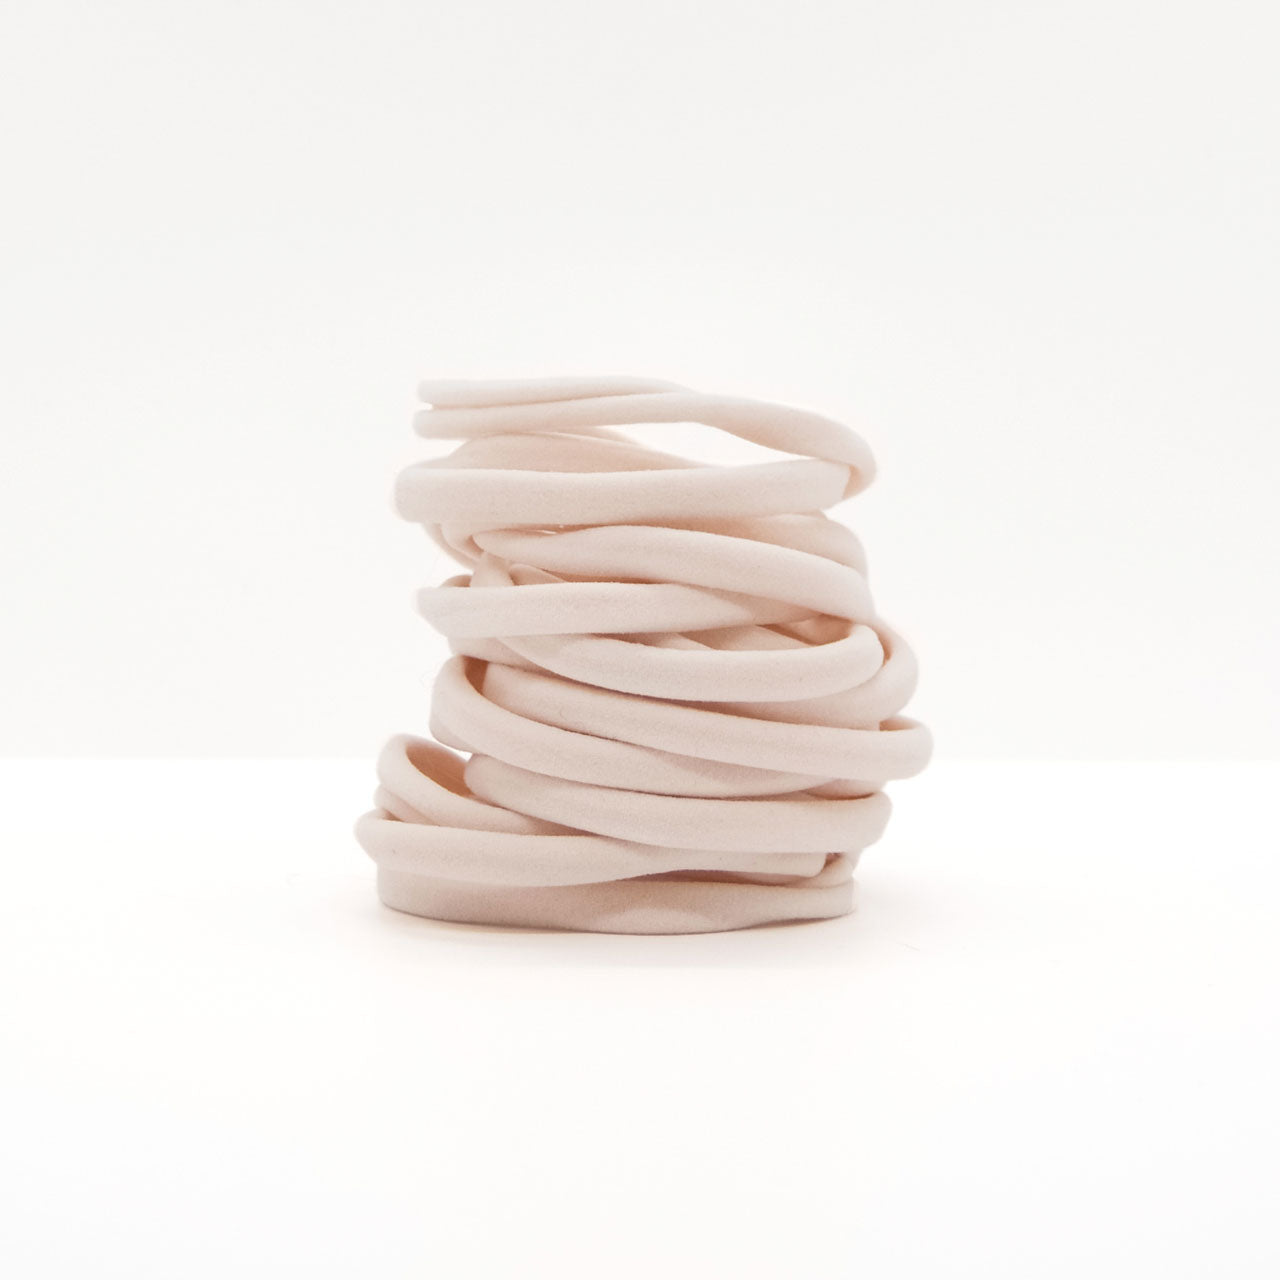 RECYCLED ELASTIC HAIR TIE - BLUSH